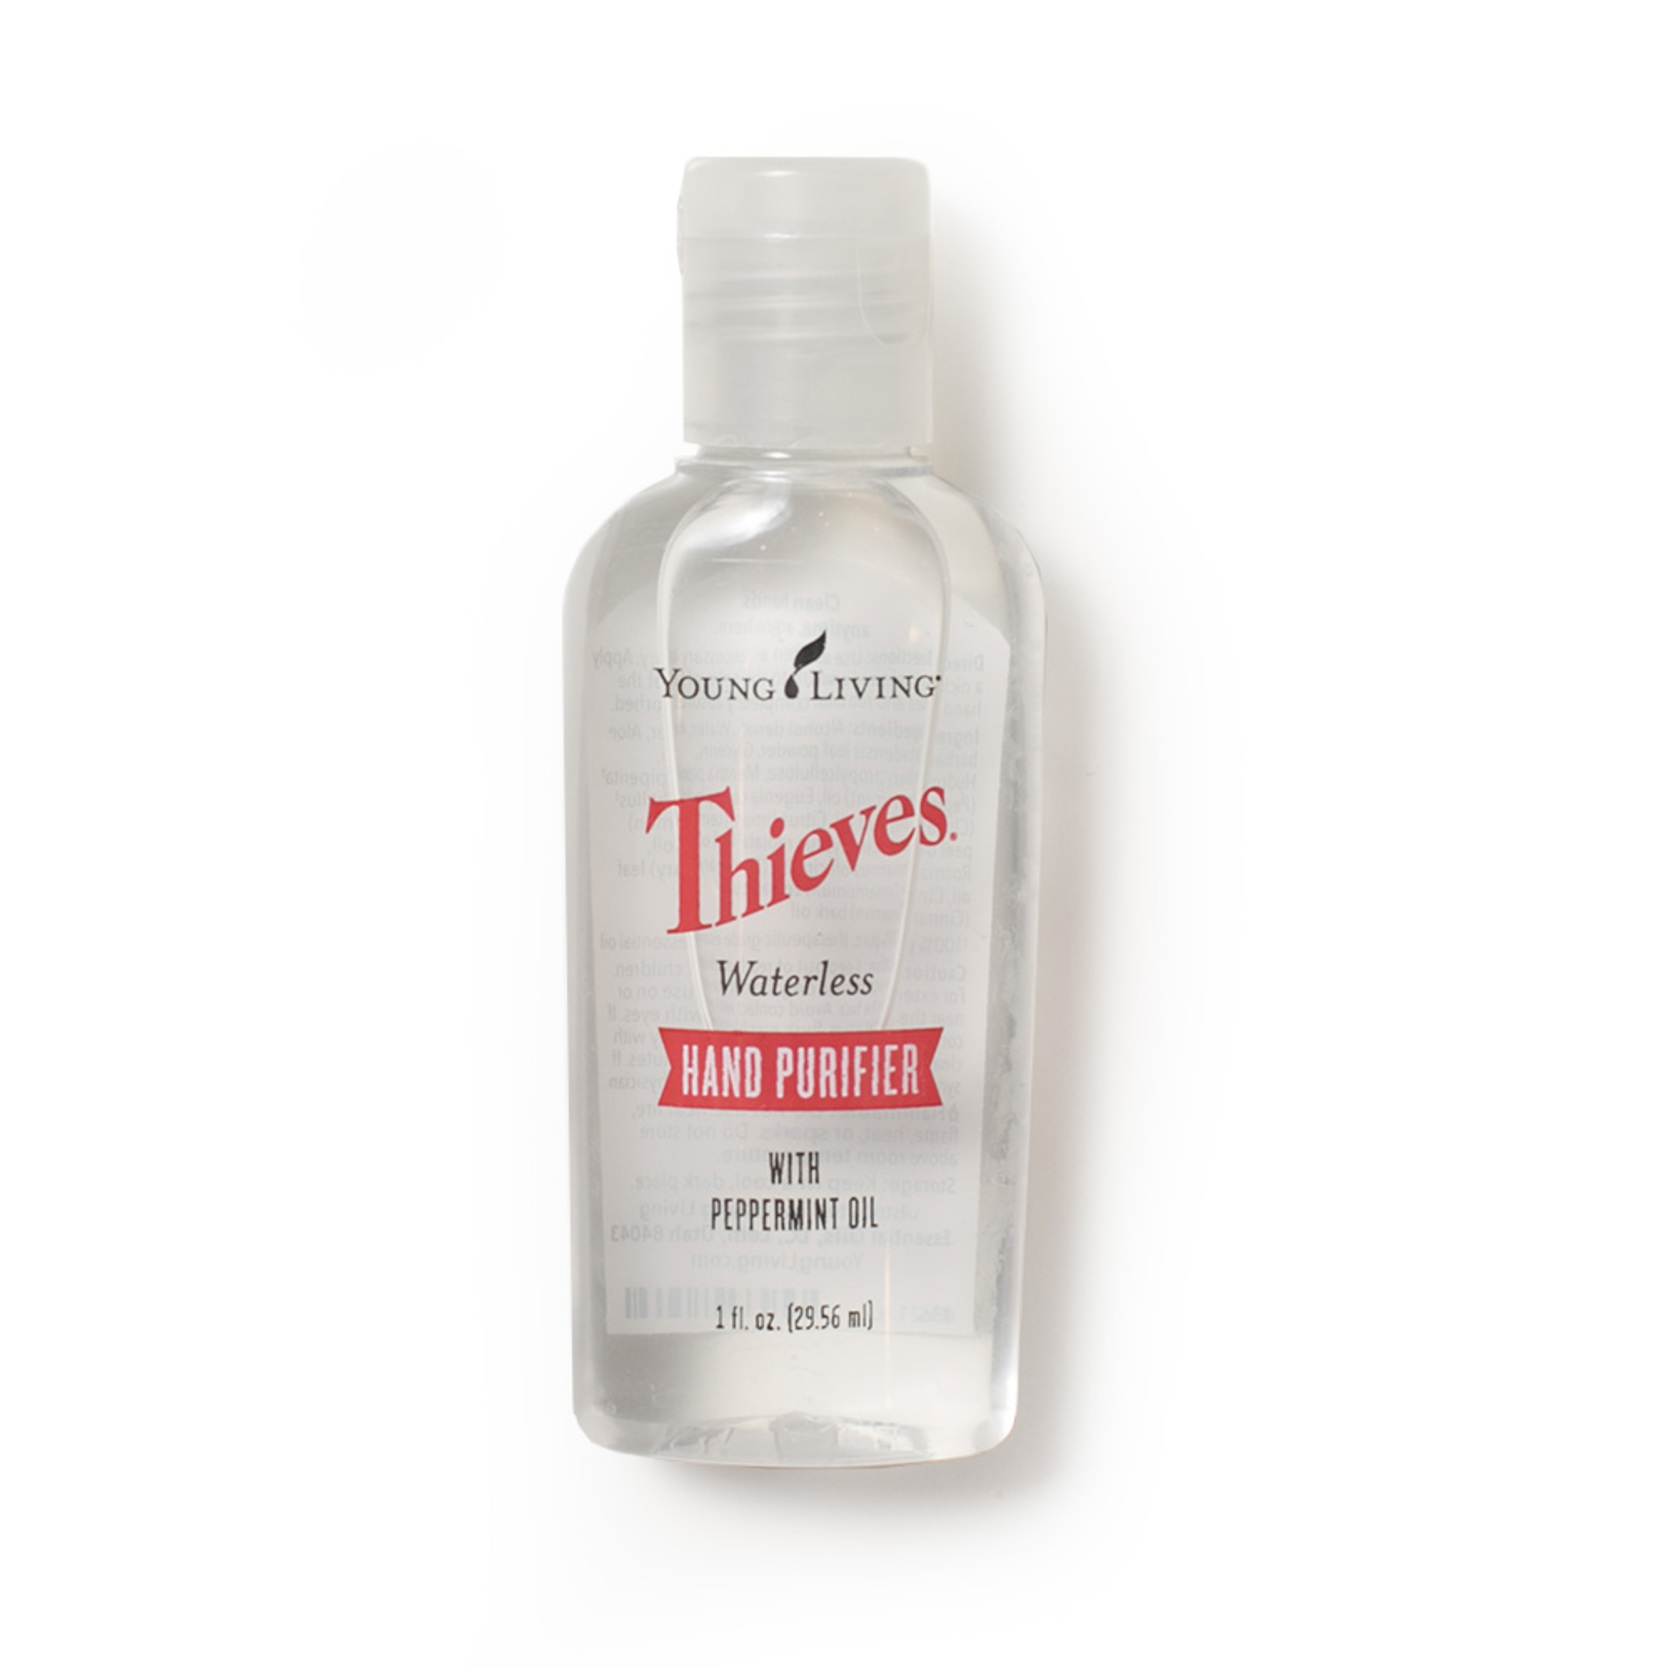 Thieves Waterless Hand Purifier